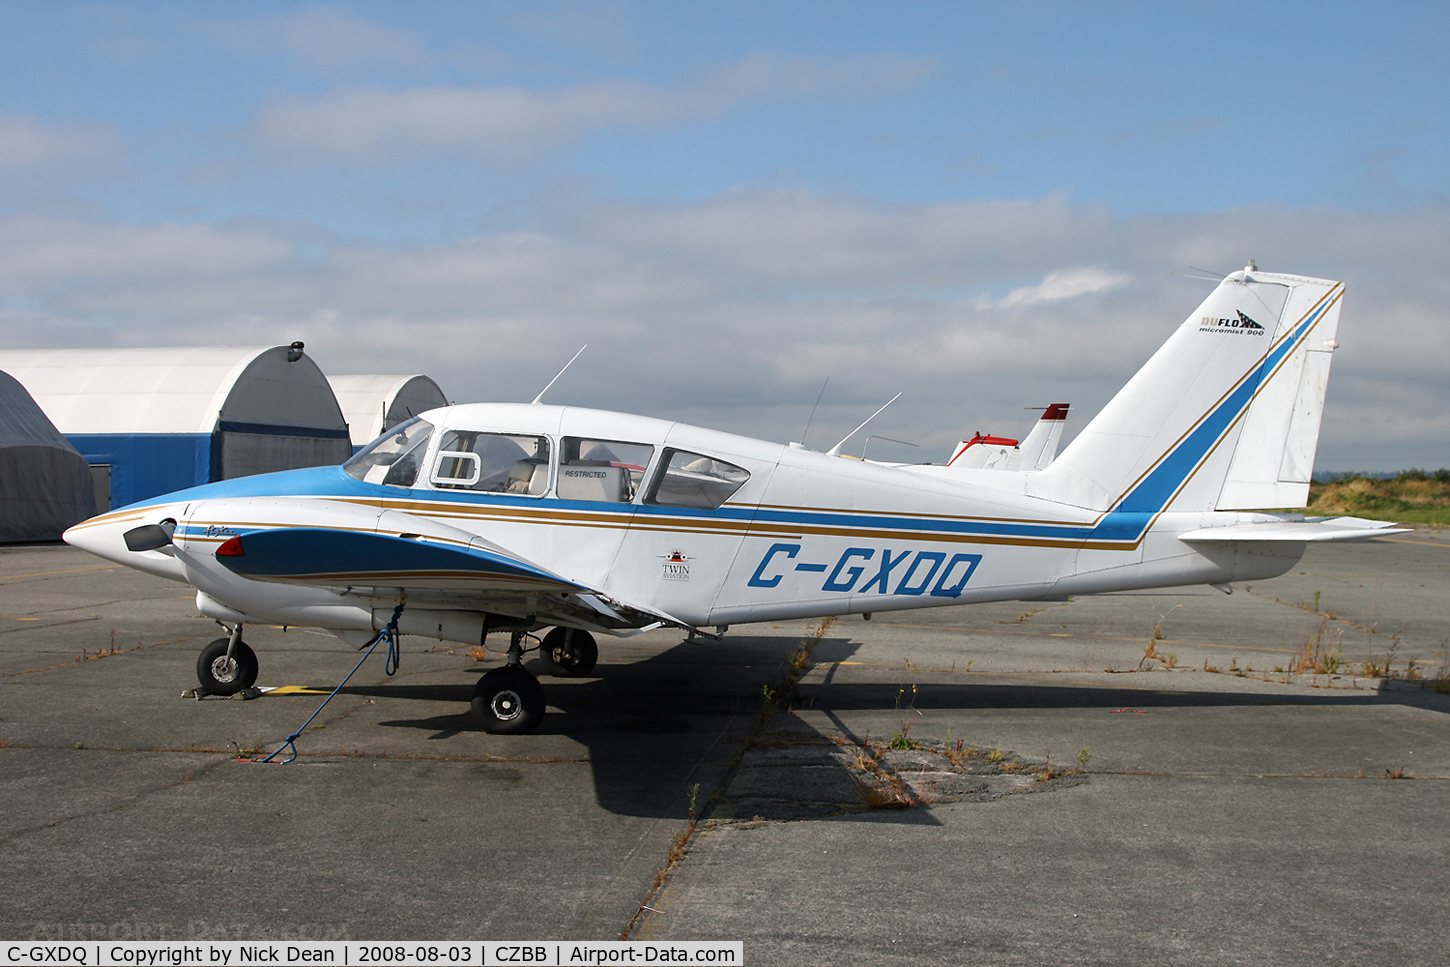 C-GXDQ, 1961 Piper PA-23-250 Aztec C/N 27-396, Boundary Bay BC (the 2nd infiltration)